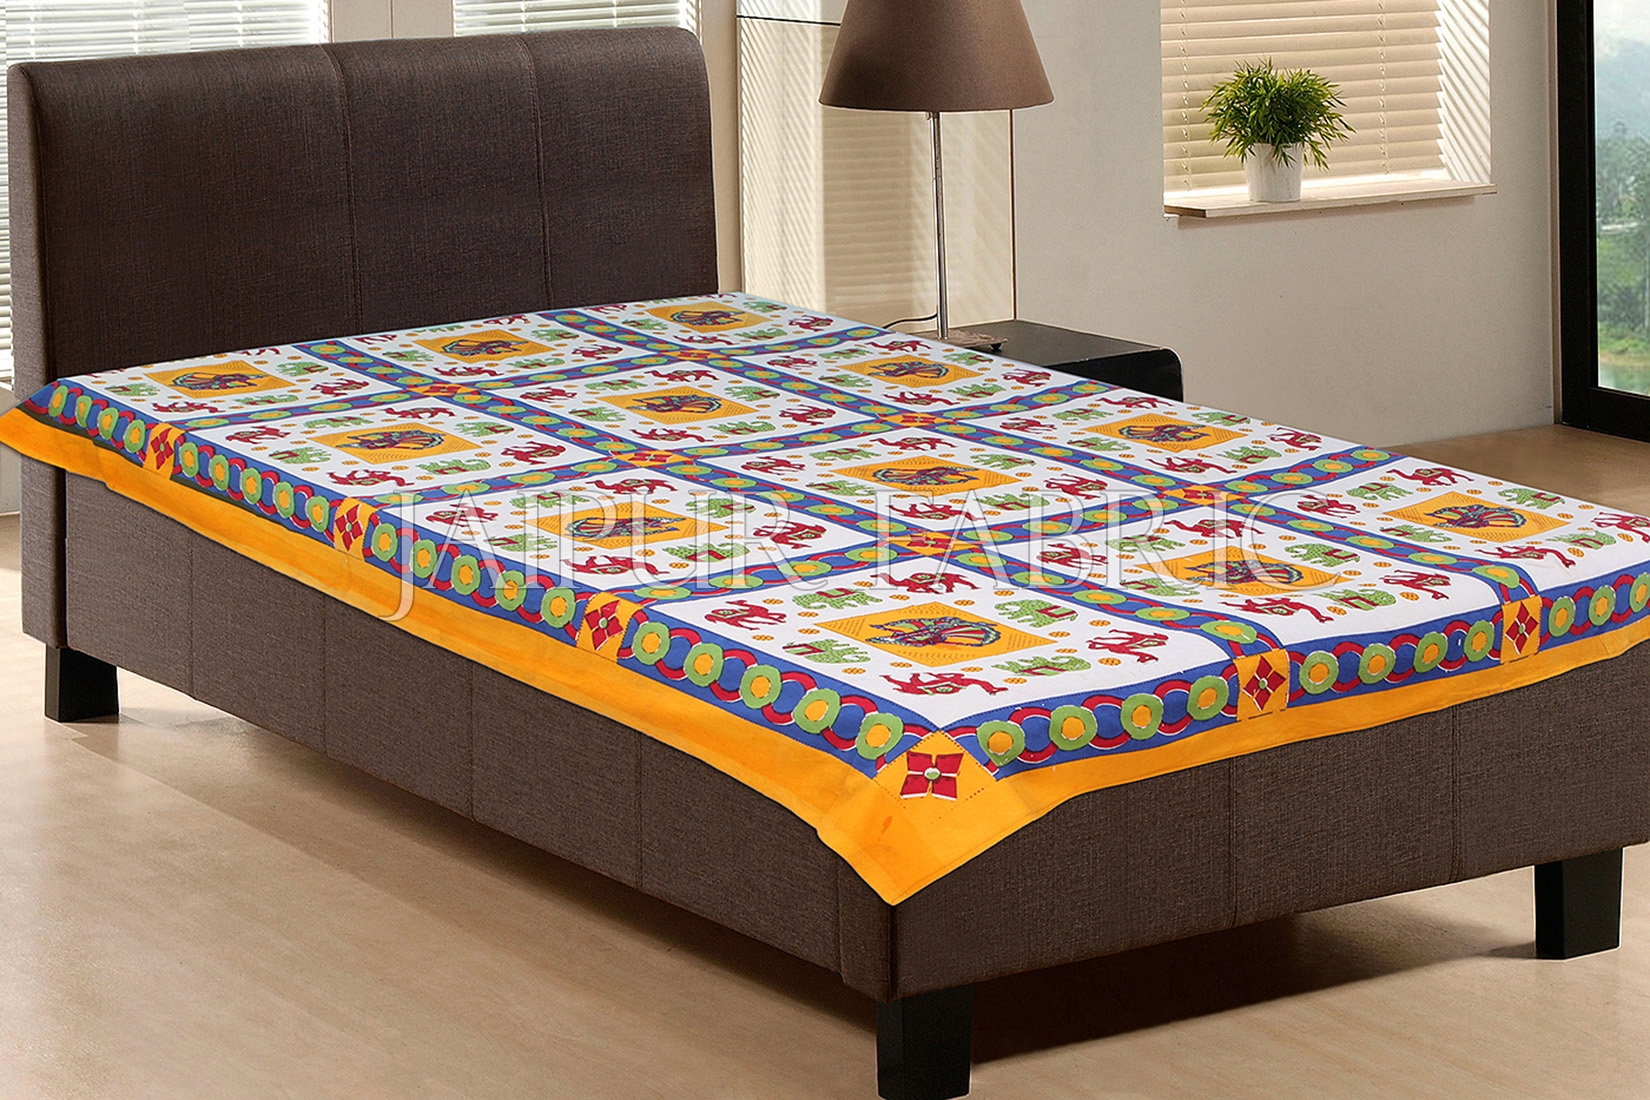 Yellow Base Green Elephant Red Camel Block print Single Bed Sheet